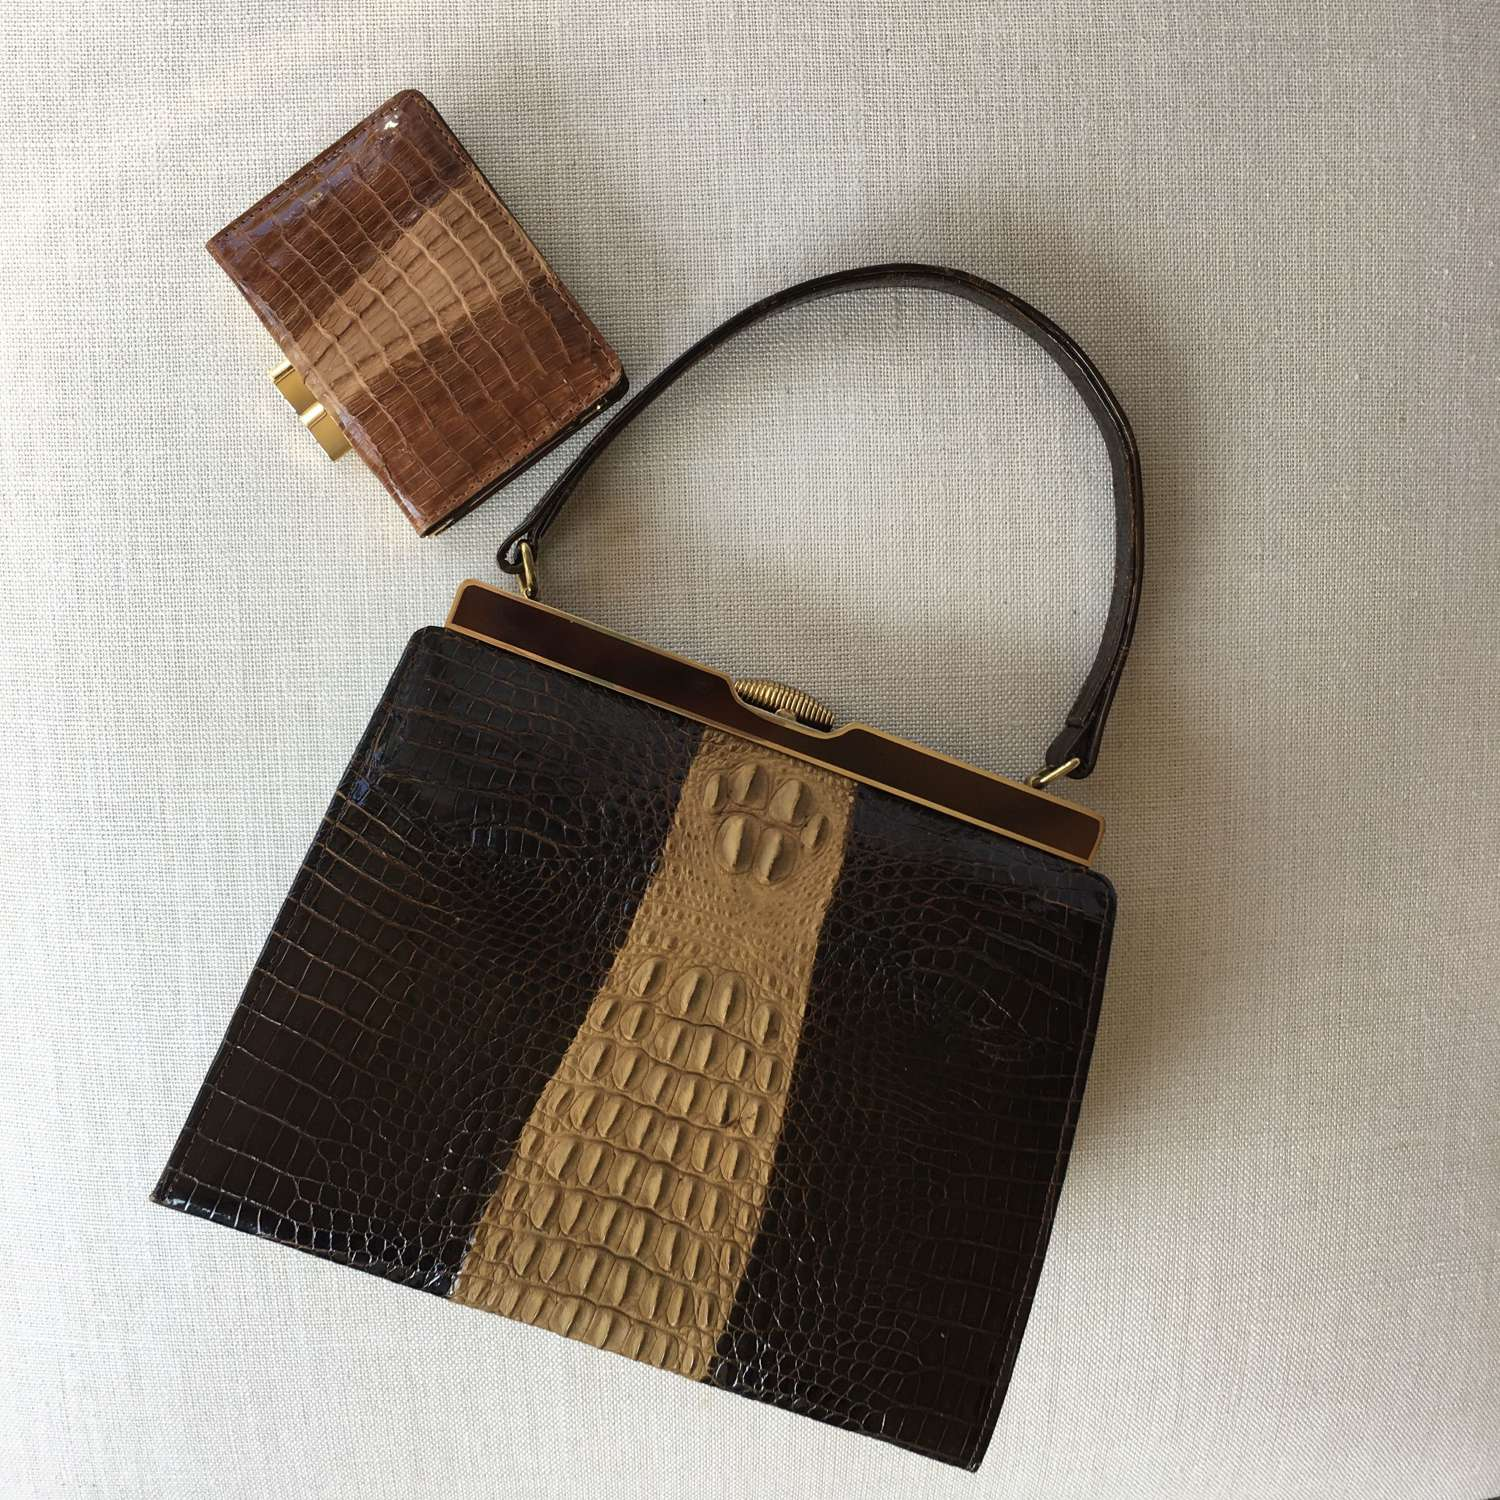 1950s leather Kelly bag with matching purse